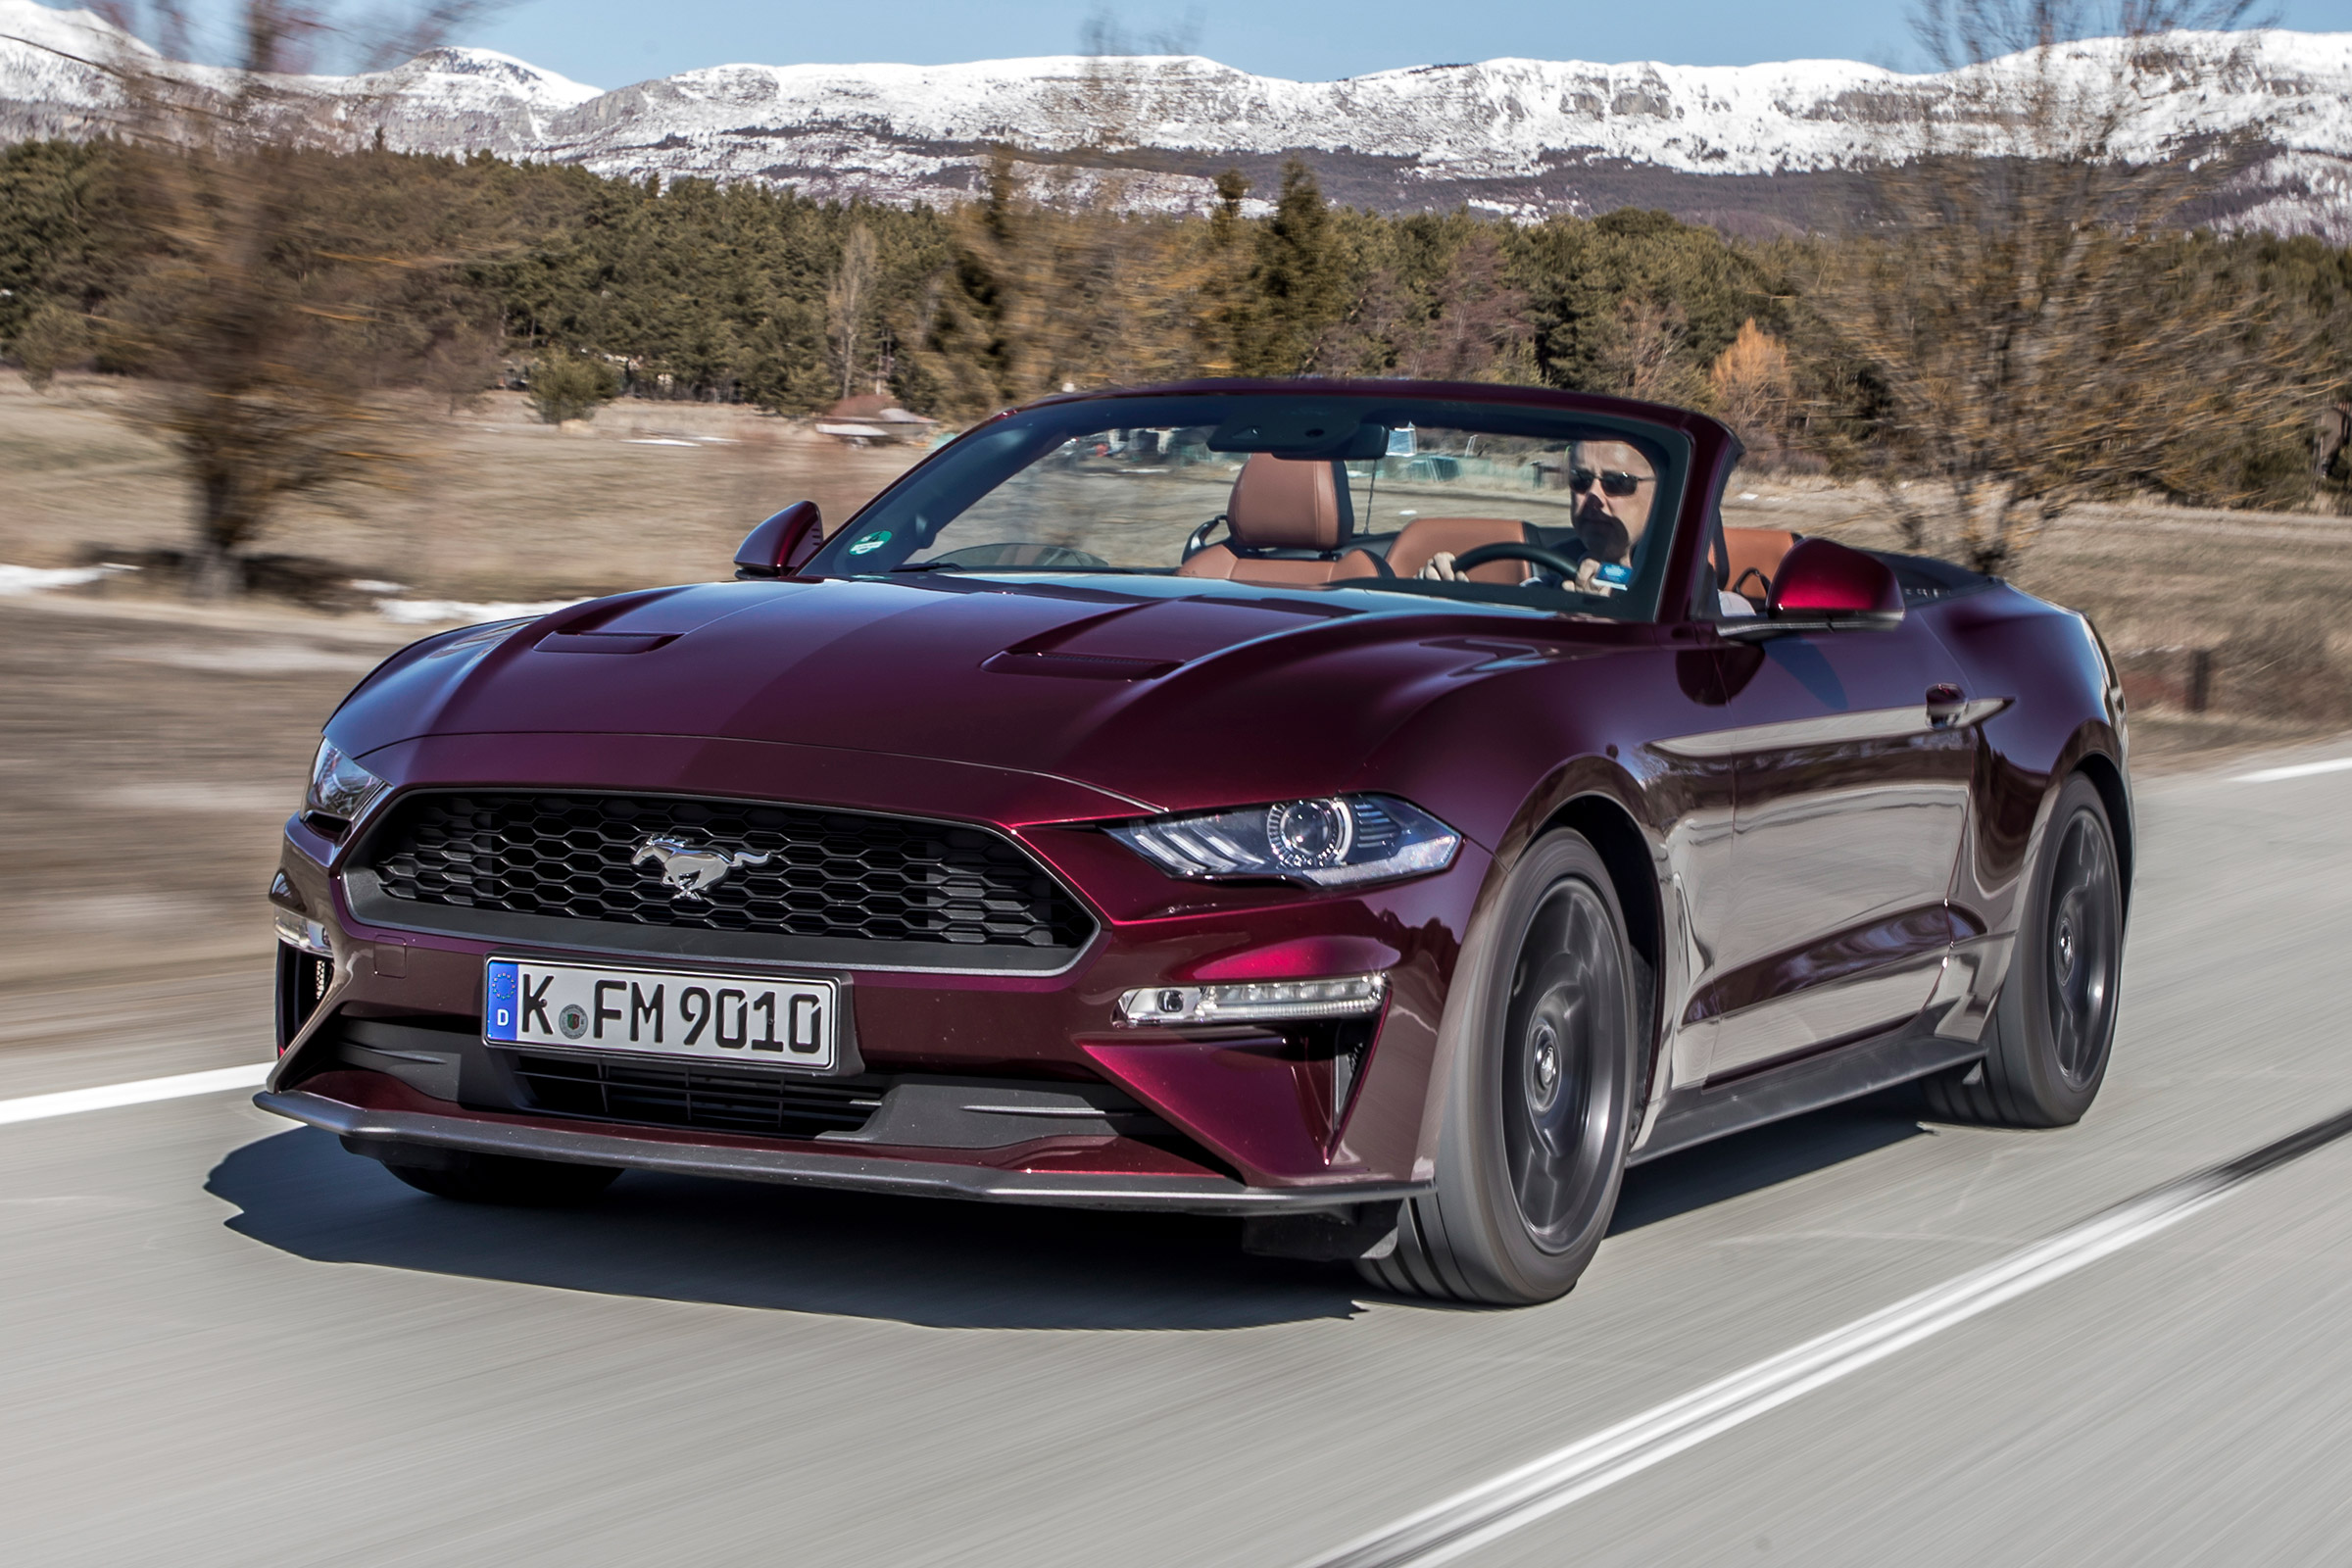 New Ford Mustang Ecoboost Convertible 2018 Review Auto Express